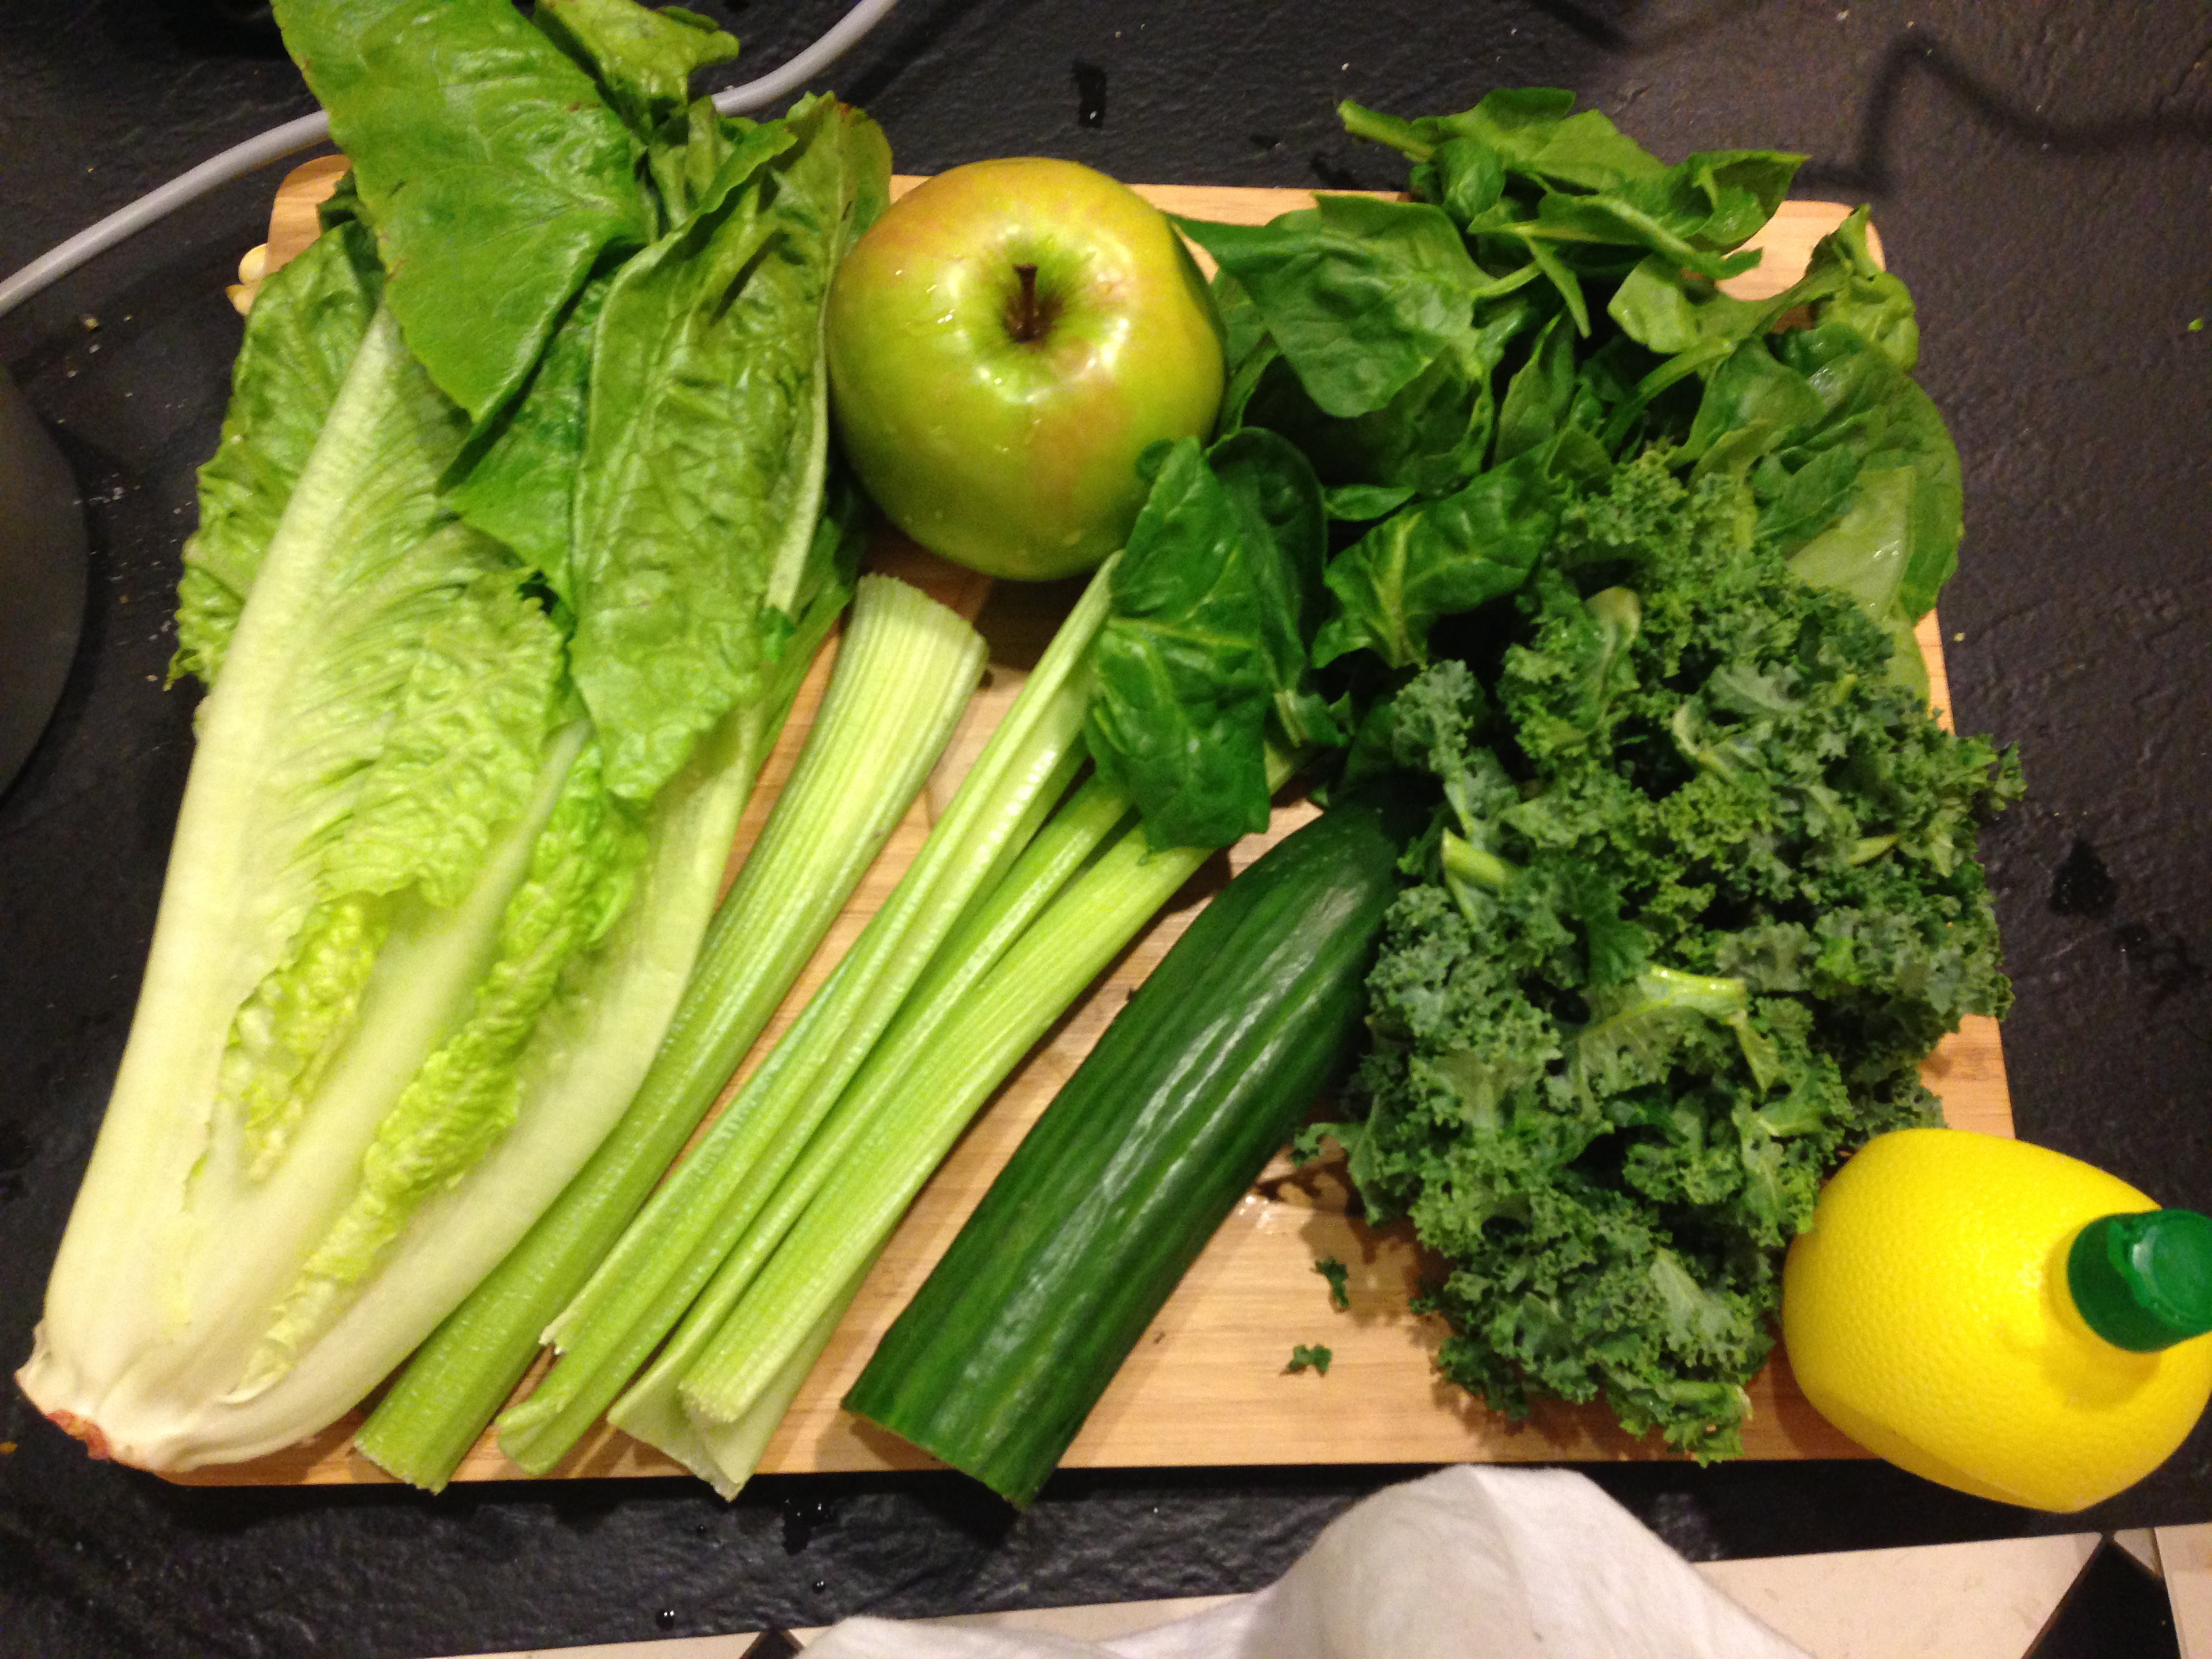 How to do your very own diy blueprintcleanse img2471 green juice malvernweather Image collections